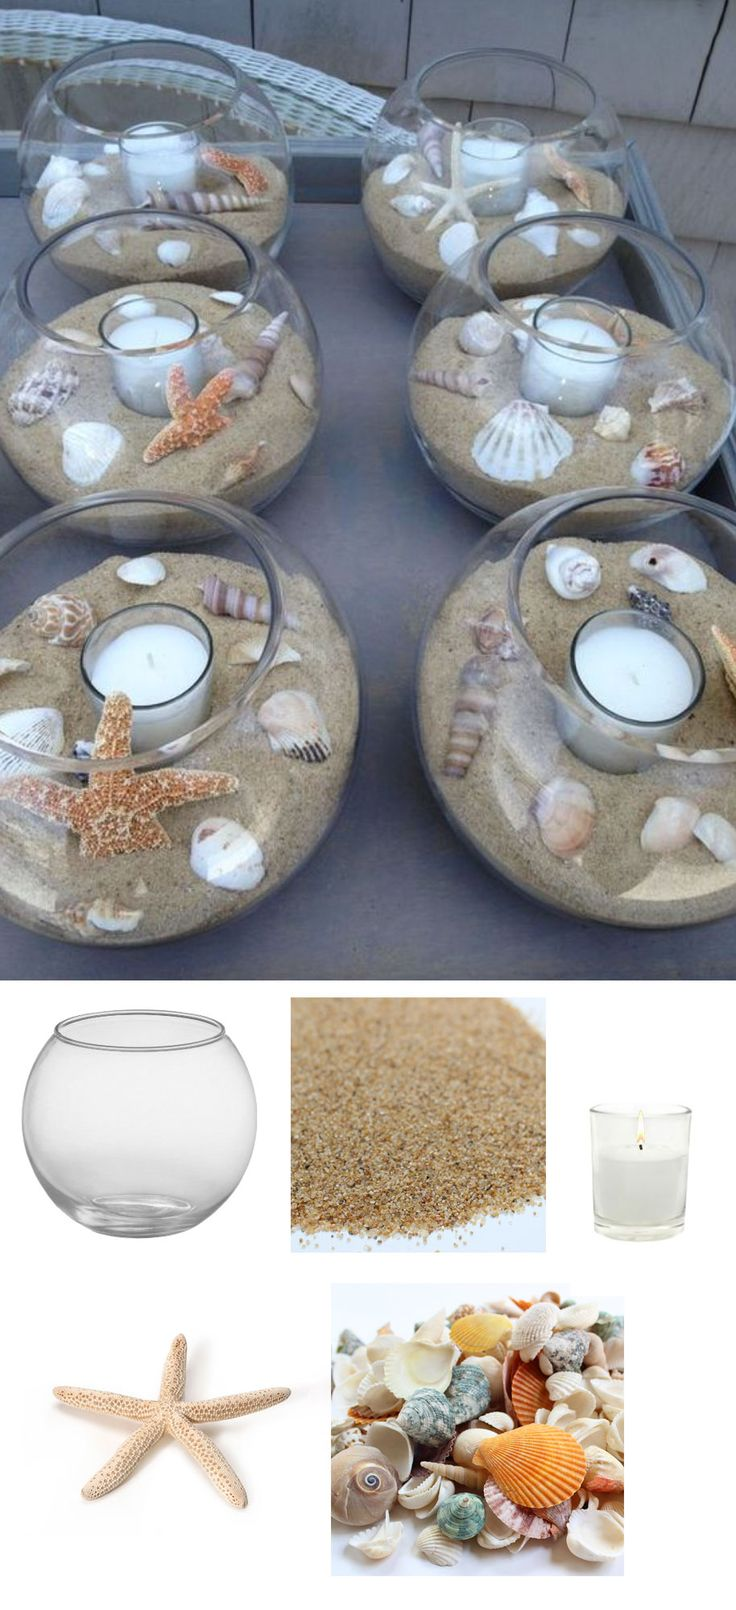 Easy DIY Beach Centerpiece. Recreate this centerpiece with glass bubble bowl, sand, votives, starfish and shells from afloral.com. #diywedding